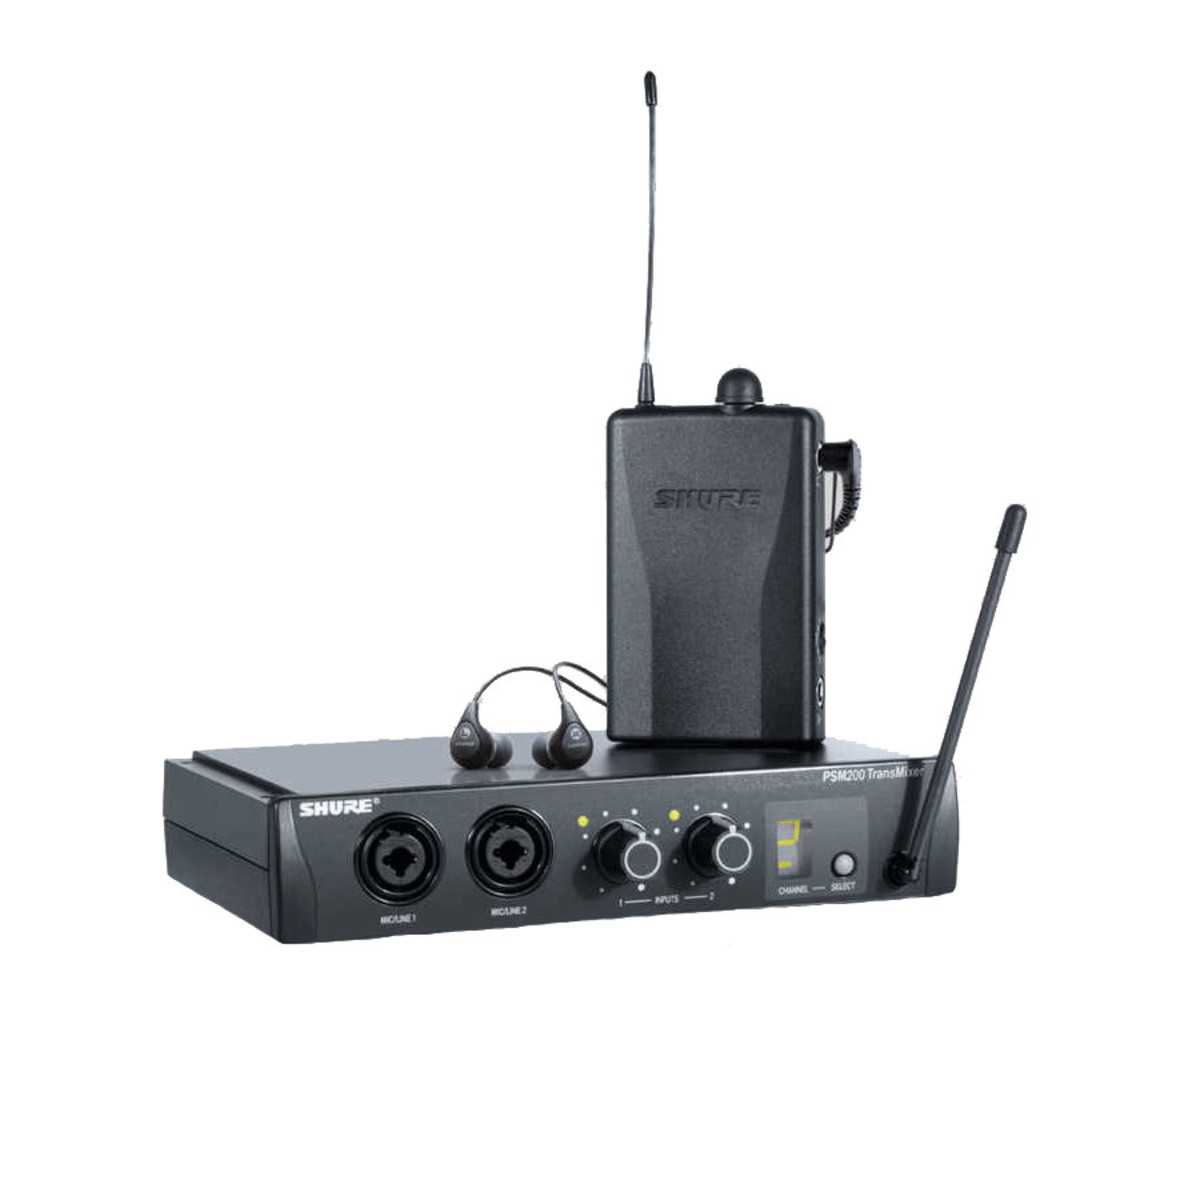 shure psm200 wireless in ear monitor system with se112 earphones b stock at gear4music. Black Bedroom Furniture Sets. Home Design Ideas